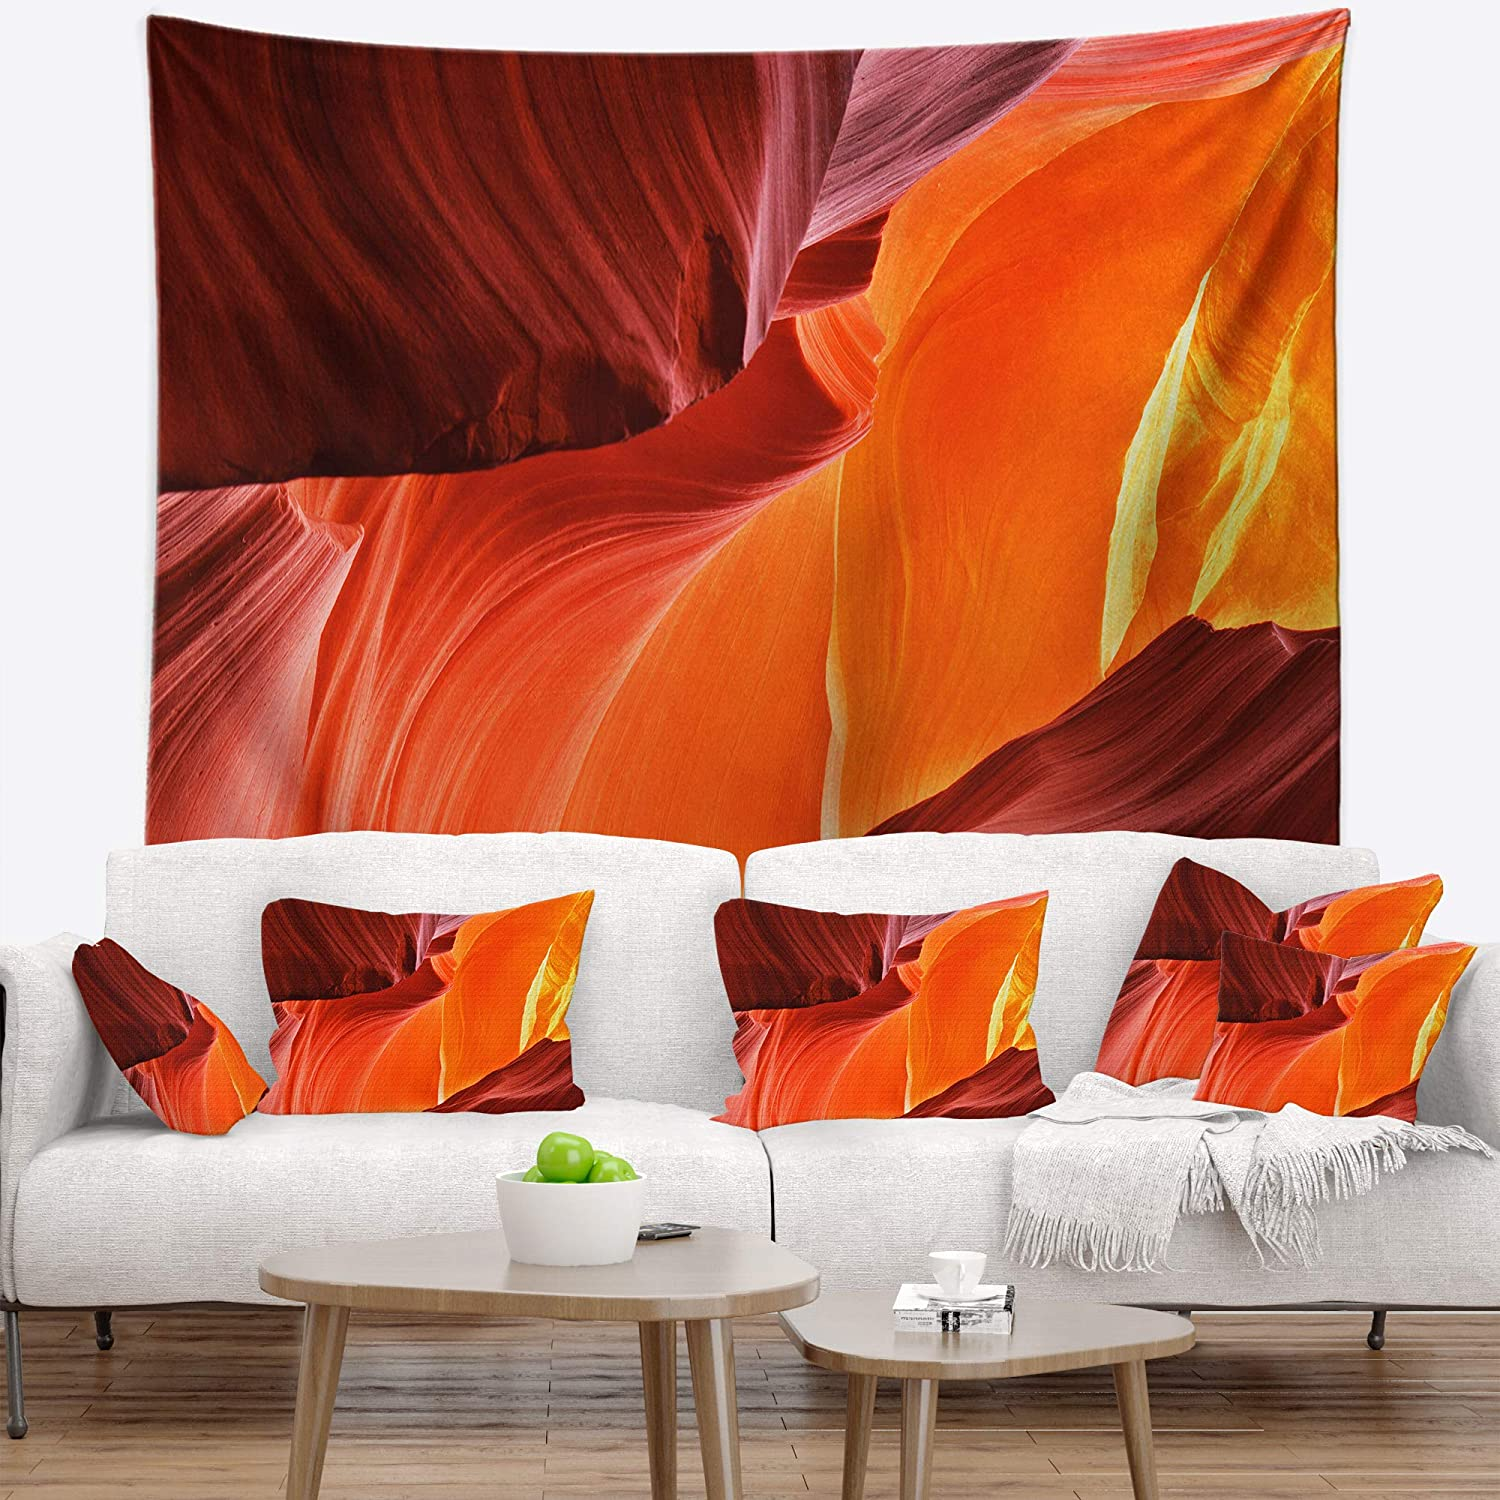 X 32 In 39 In Designart Tap8727 39 32 Midday In Antelope Canyon Landscape Photo Blanket Décor Art For Home And Office Wall Tapestry Medium Created On Lightweight Polyester Fabric Home Kitchen Home Décor